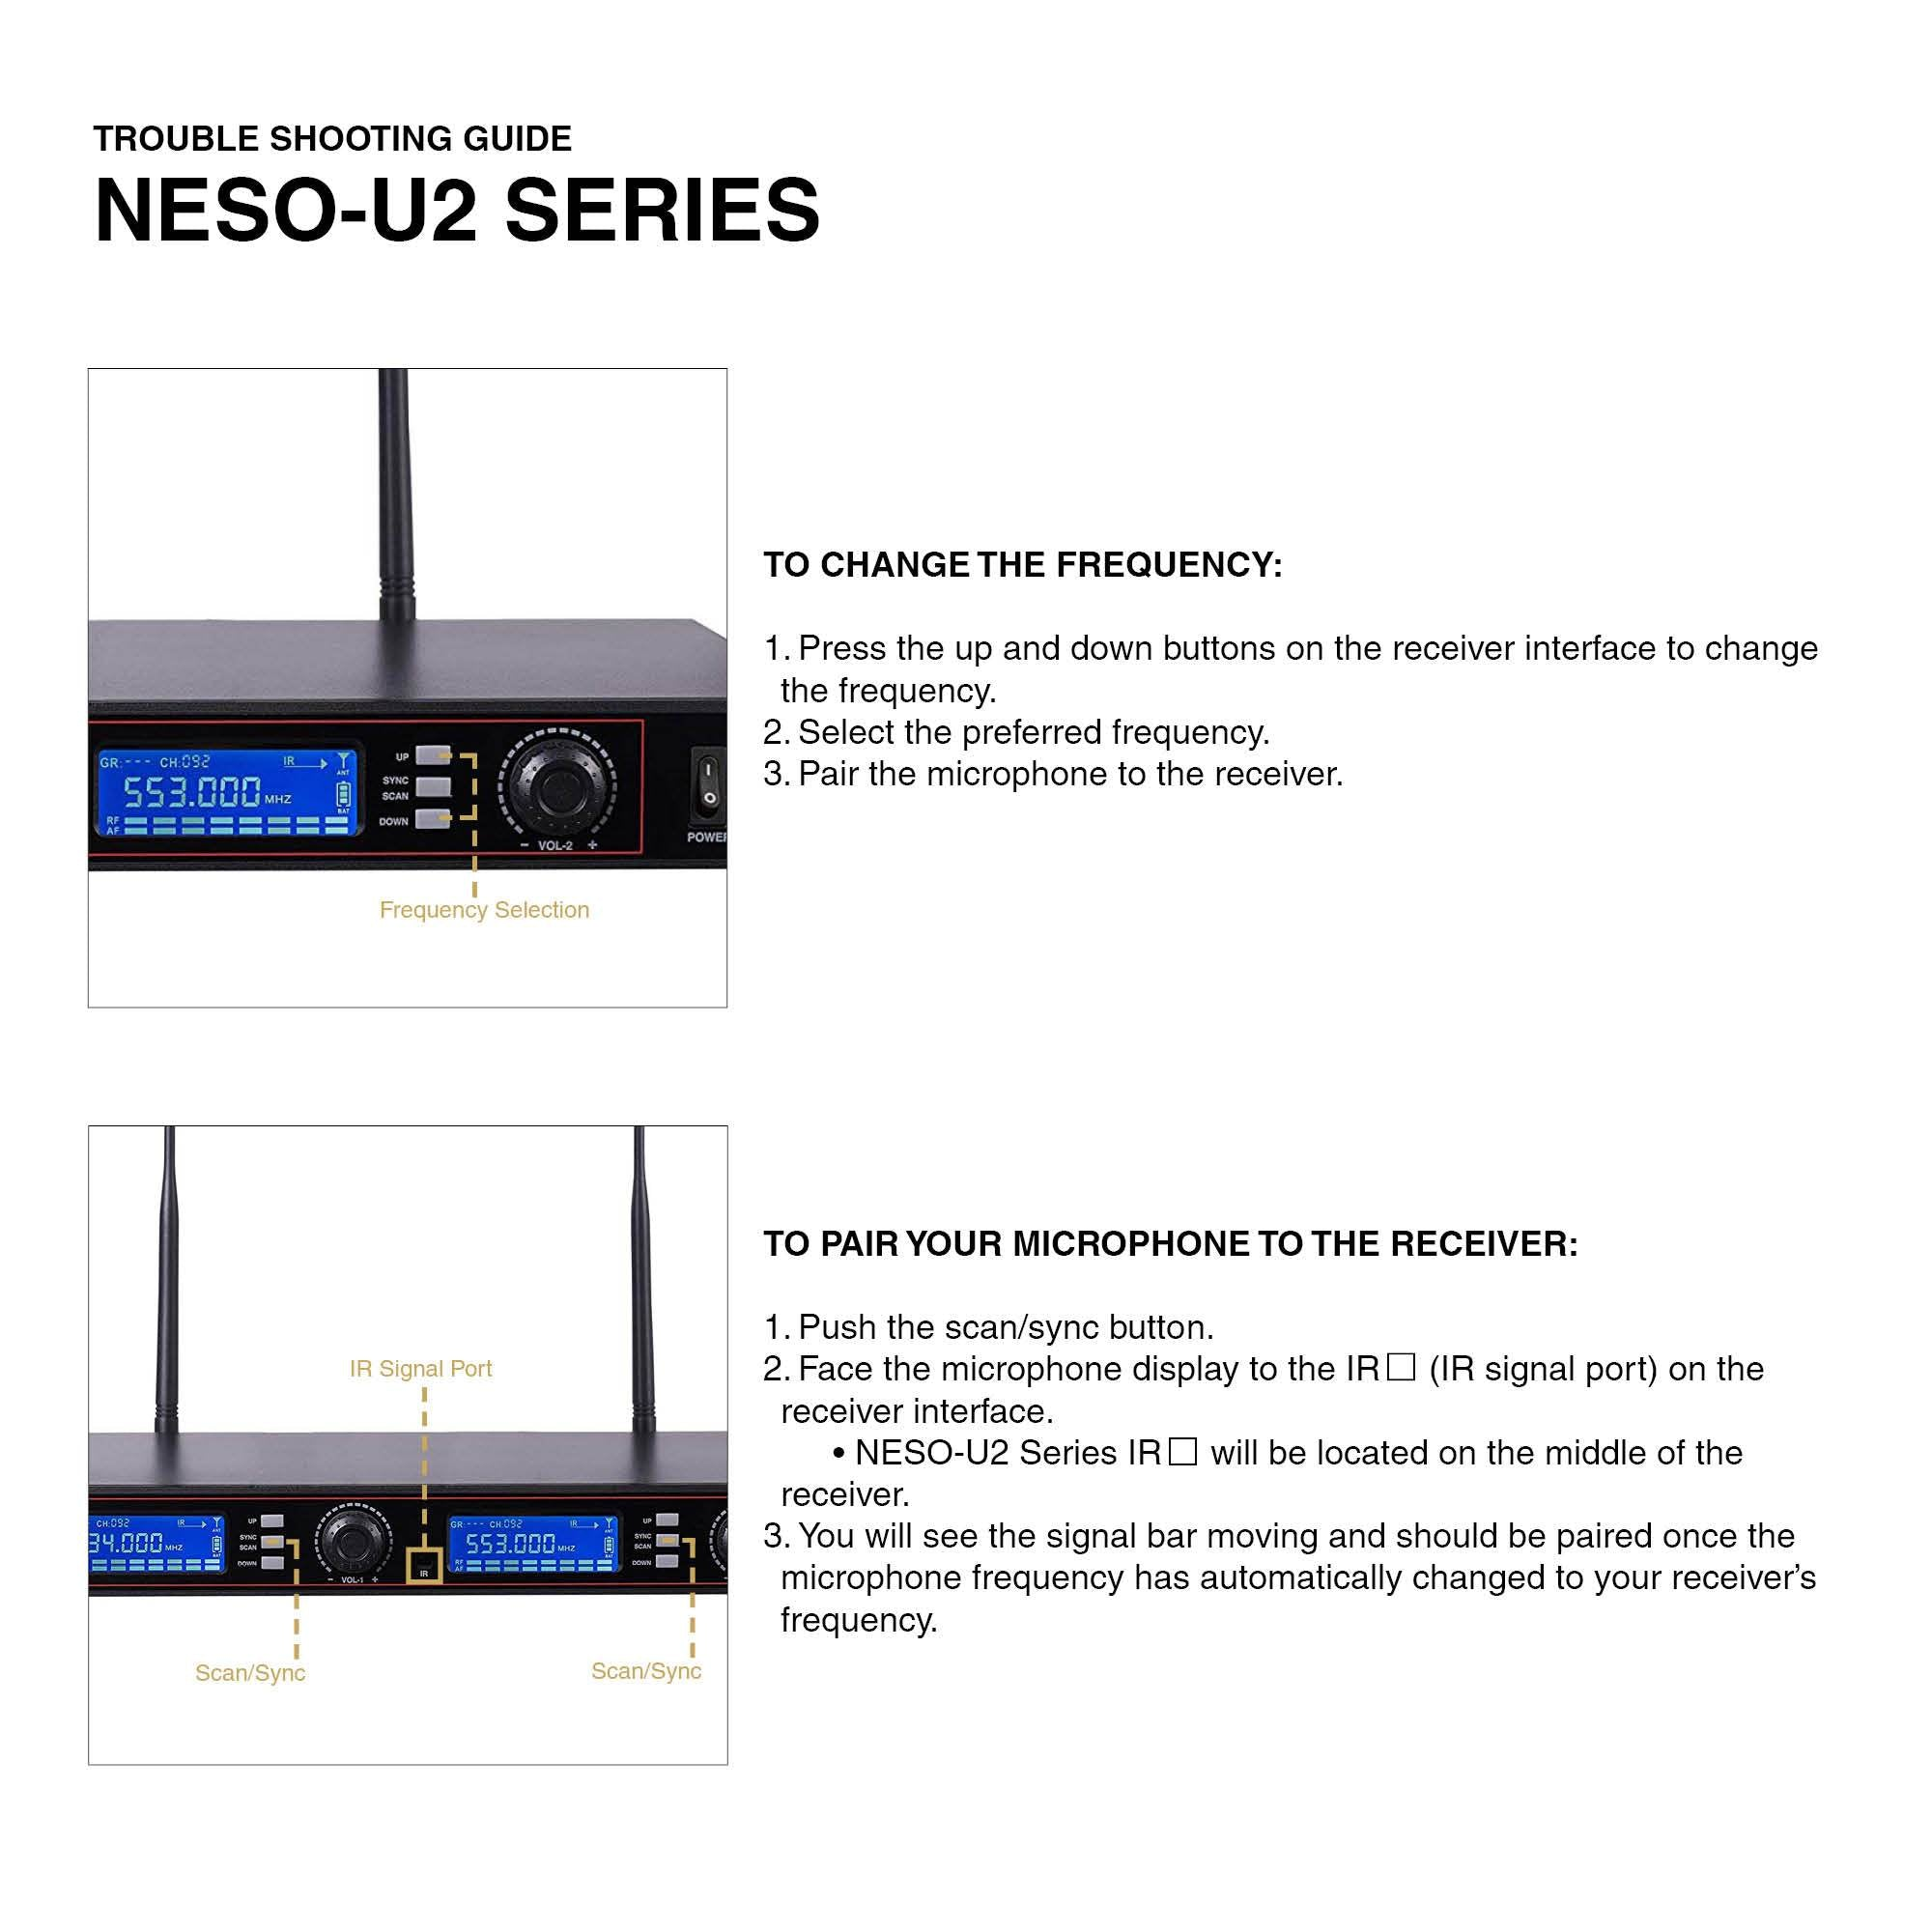 NESO-U2 SERIES NESO-U2HH NESO-U2HL NESO-U2LL Troubleshooting Guide How to Connect Sync Microphone to Receiver How to Change the Frequency